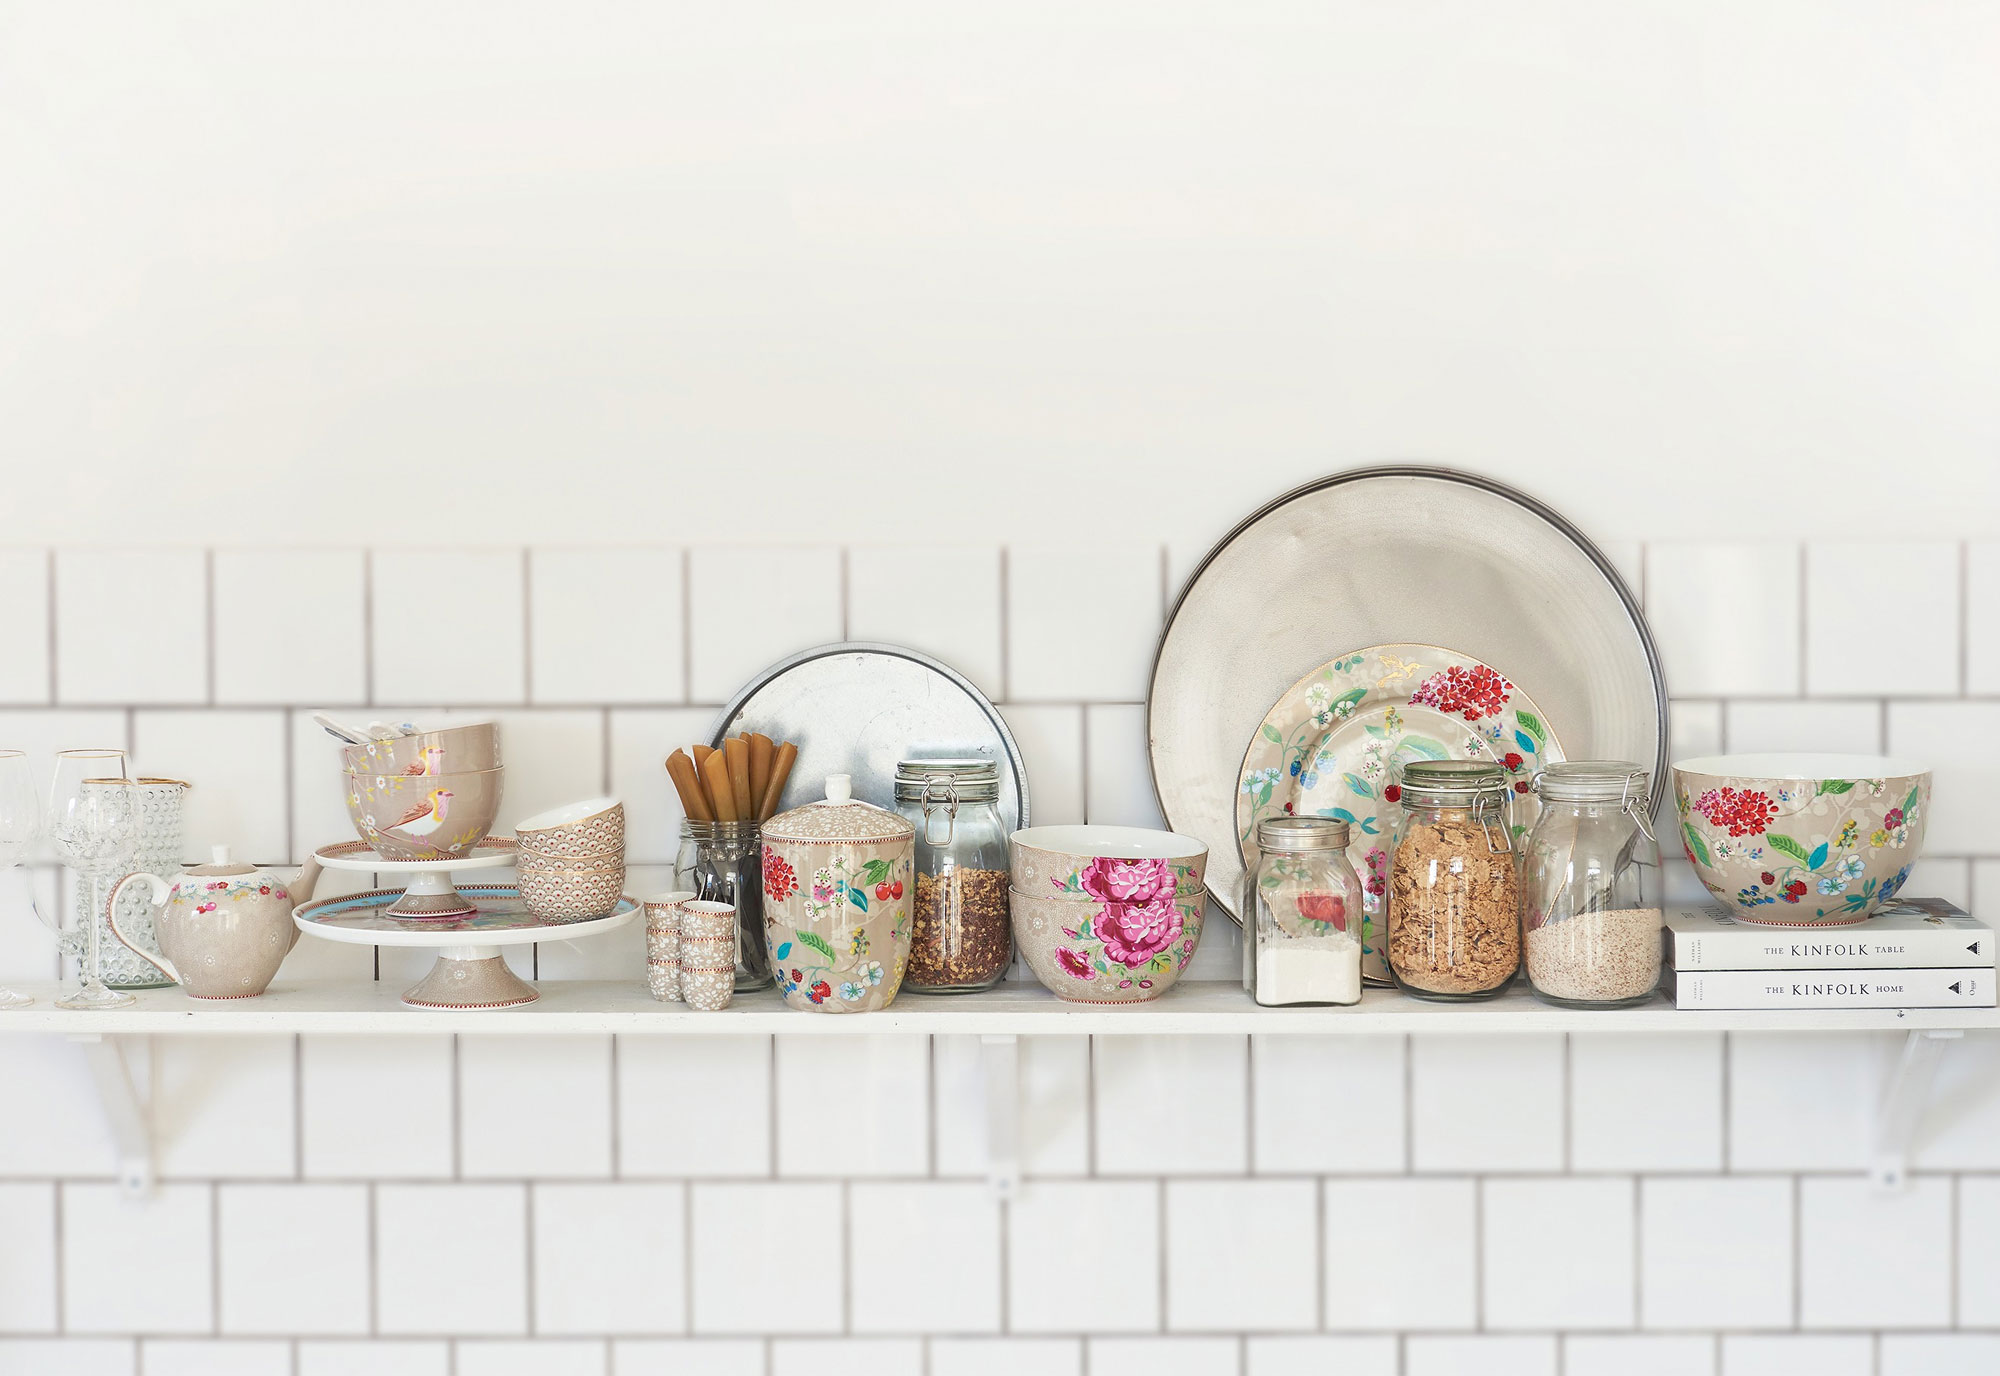 Merk in de spotlight: PiP Studio met PiP servies